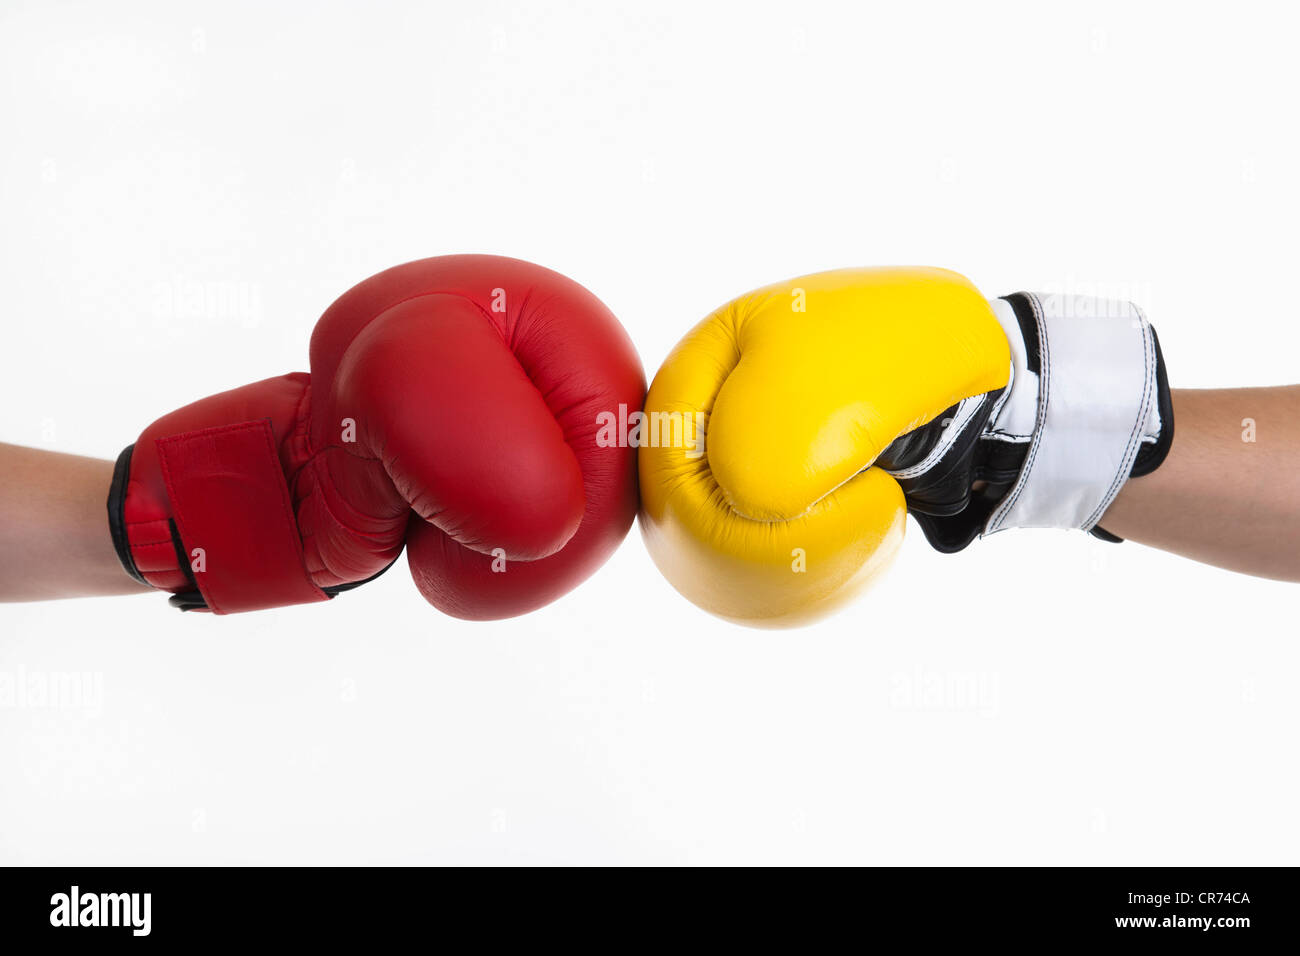 Human hands with red and yellow boxing gloves - Stock Image